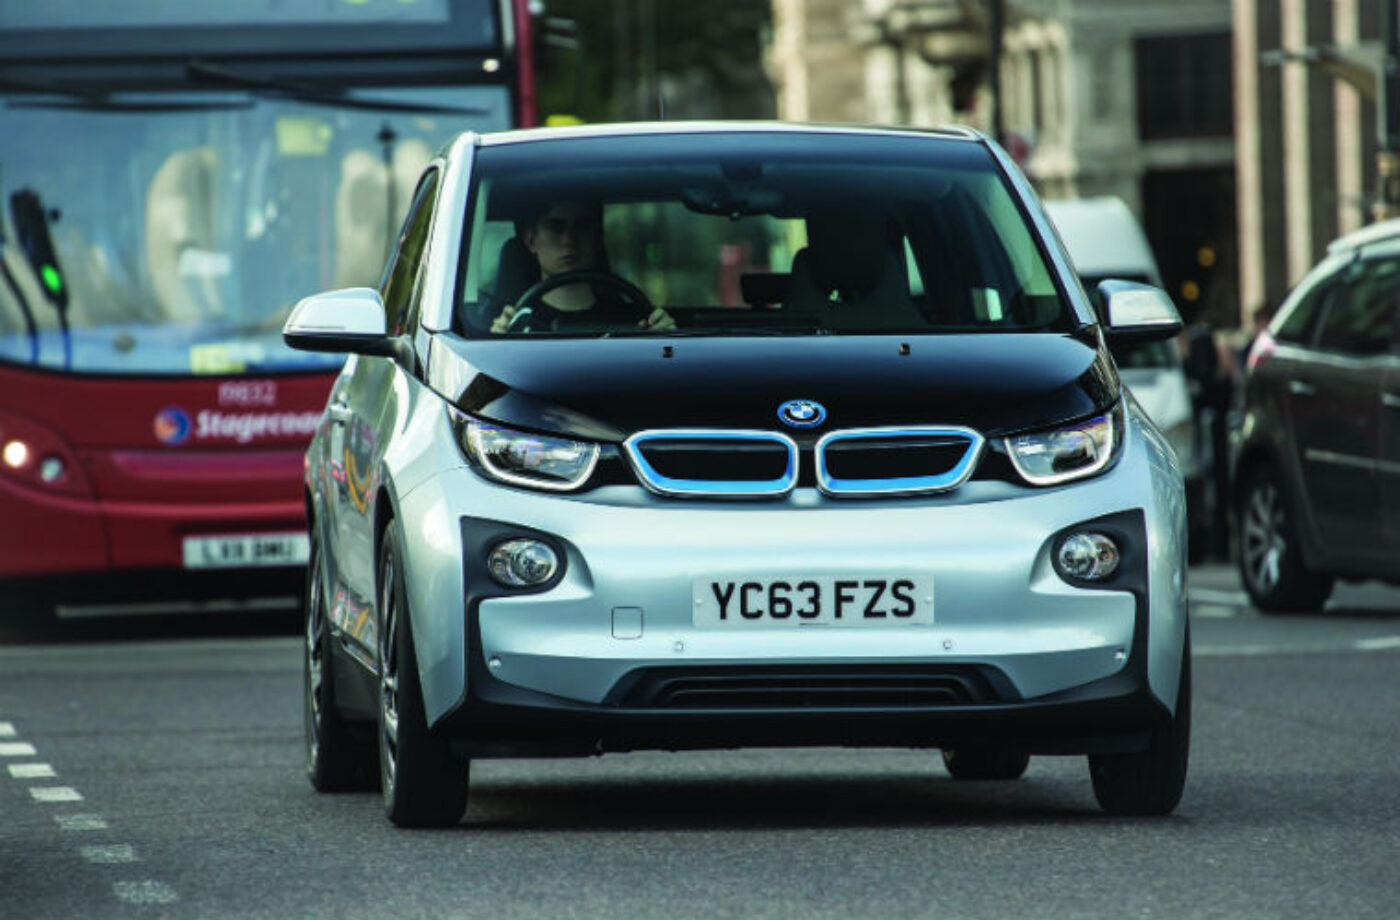 Diagnostic specialist provides clarification on BMW i3 servicing query